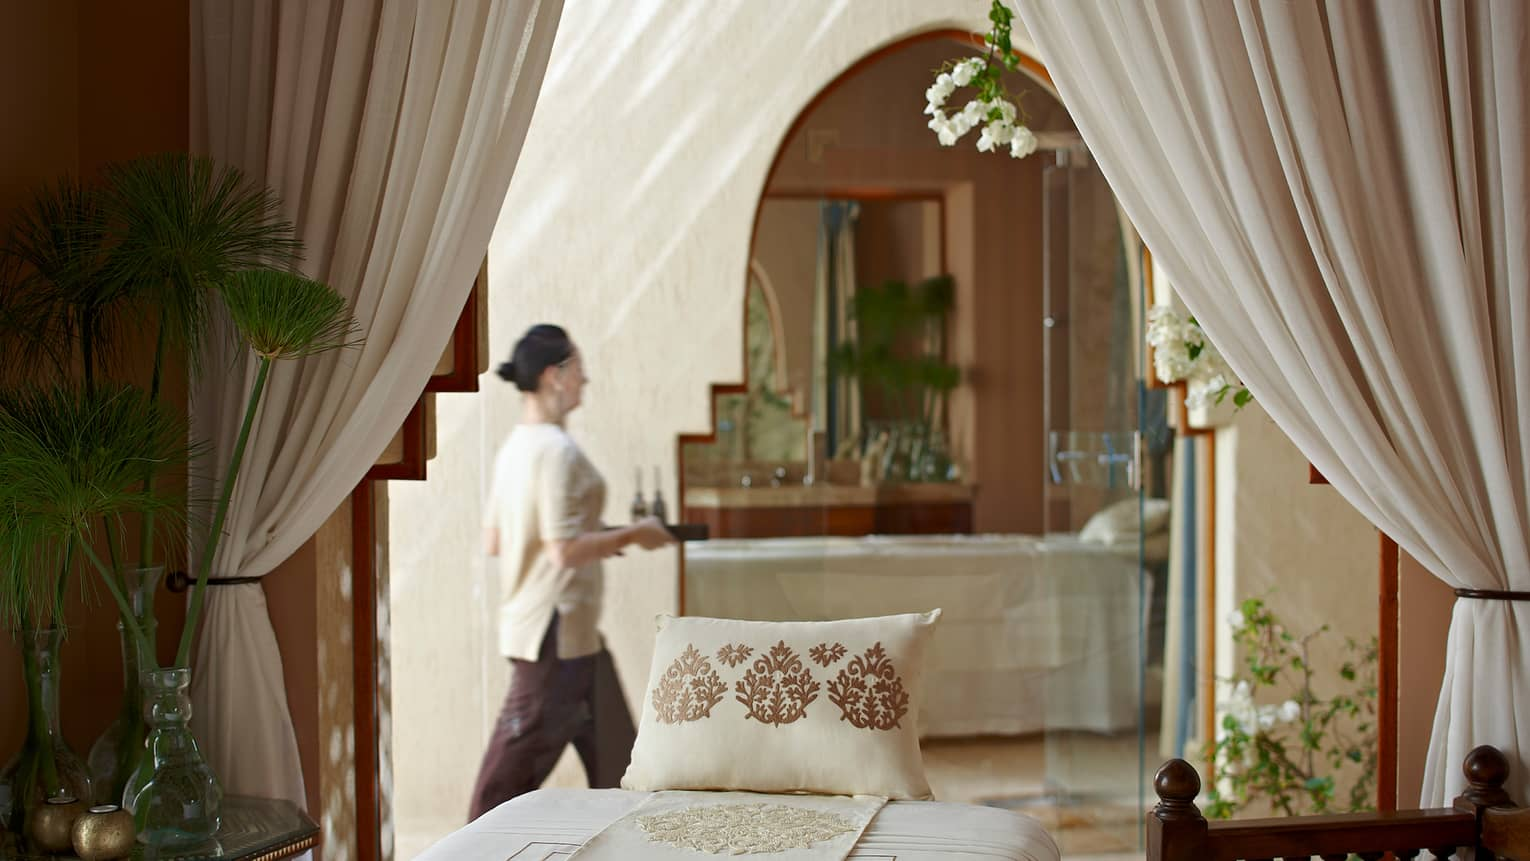 Woman with tray walks behind massage bed with embroidered pillow in spa